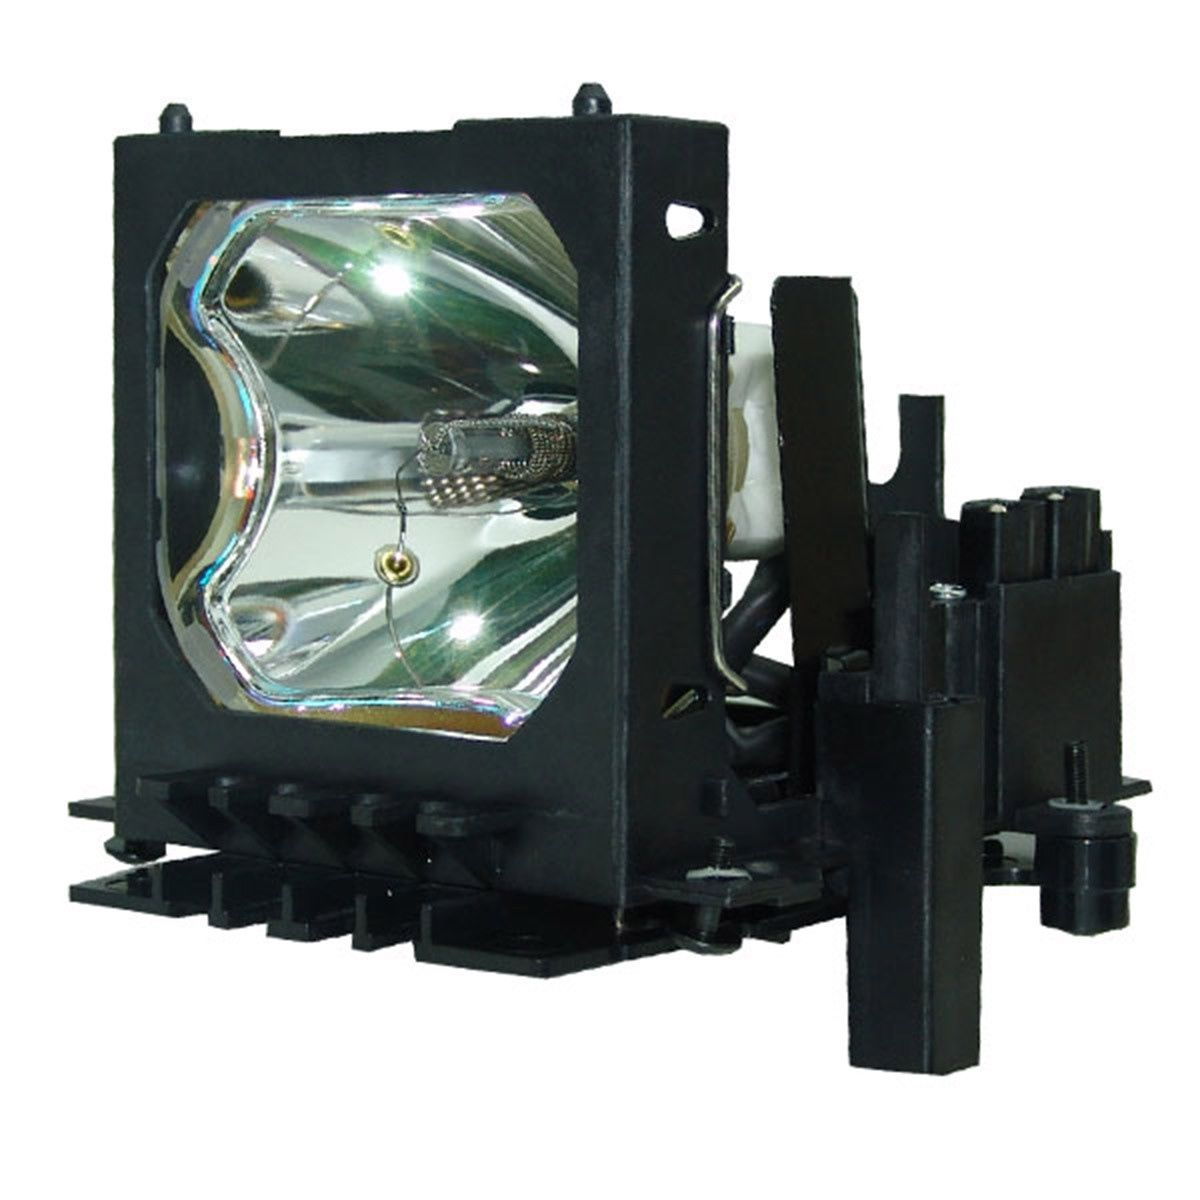 Projector Lamp Bulb SP-LAMP-016 SPLAMP016 for Infocus CP-SX1350 CP-X1230 CP-X1250 EDP-X900 LP850 MP4100 SRP-3540 With Housing original projector lamp dt00681 for cp x1230 cp x1230w cp x1250 cp x1250j cp x1250w